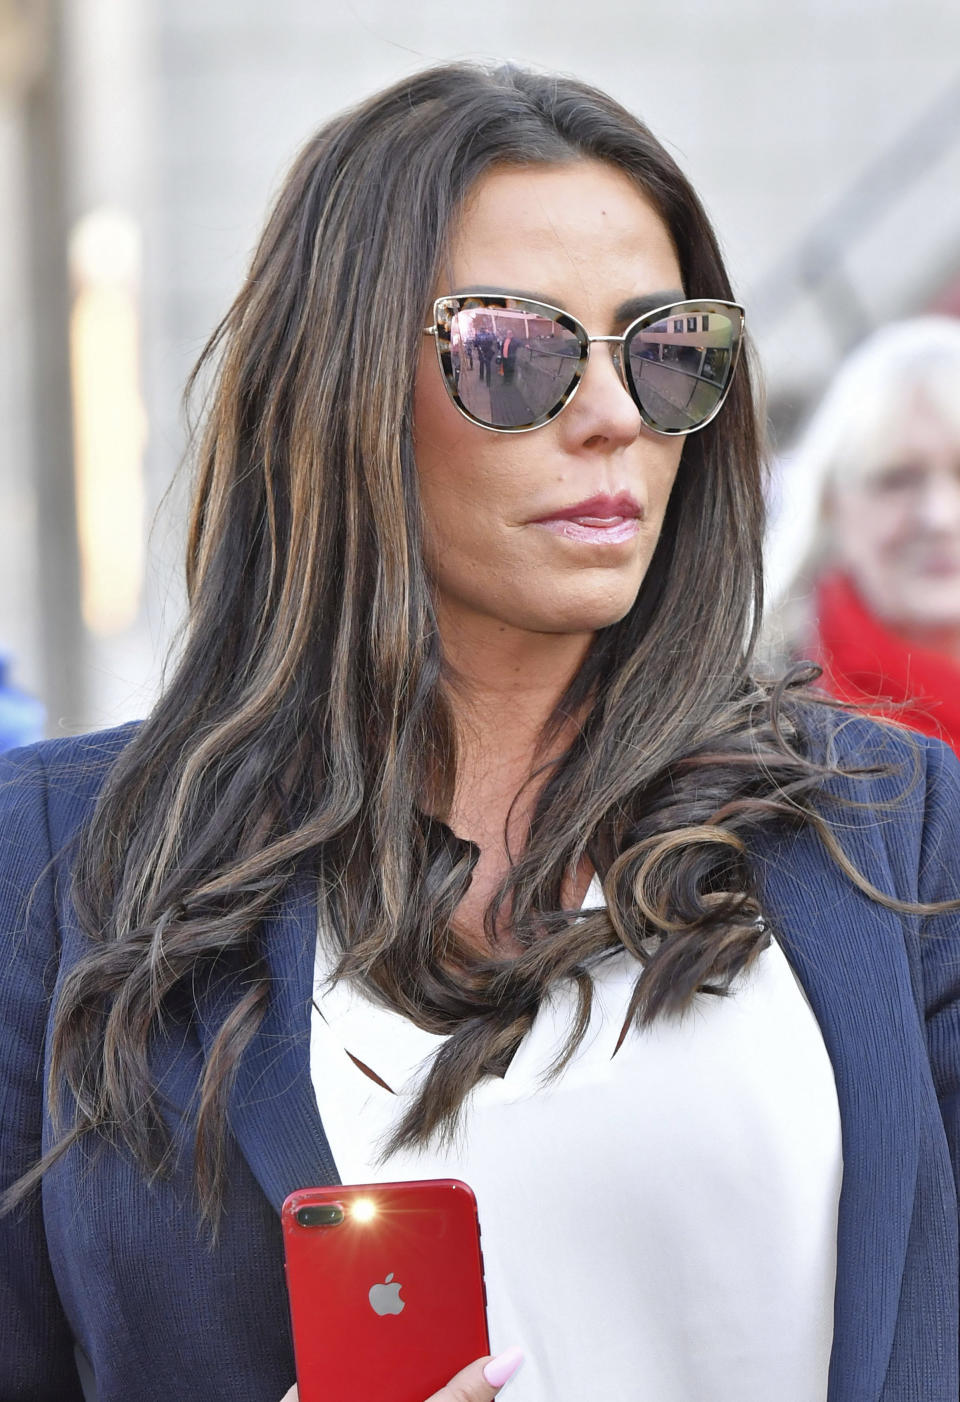 Photo by: zz/KGC-143/STAR MAX/IPx 2019 2/25/19 Katie Price is seen leaving Bexley Magistrates' Court after her trial for being drunk while in charge of a motor vehicle. Price was arrested in South East London in November 2018 and today was found guilty and fined a total of £2,425 - and she has been banned from driving for three (additional) months. (London, England, UK)